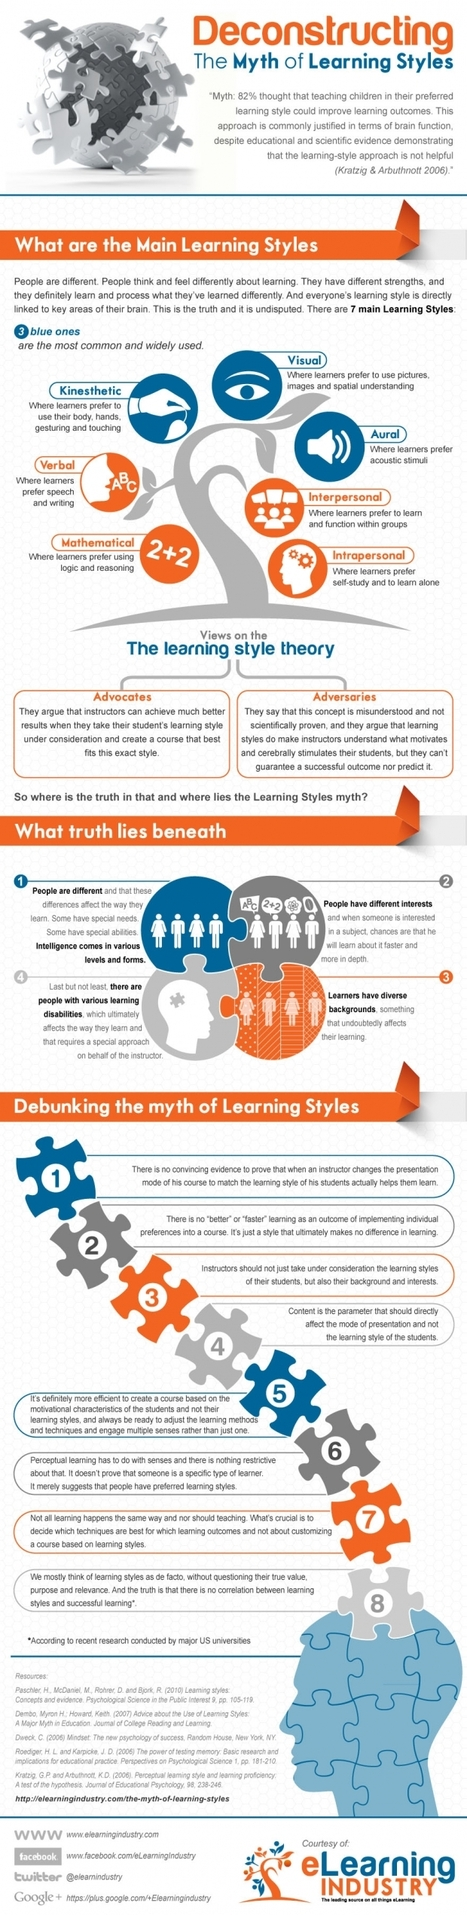 The Myth Of Learning Styles - Edudemic | Education Technology | Scoop.it